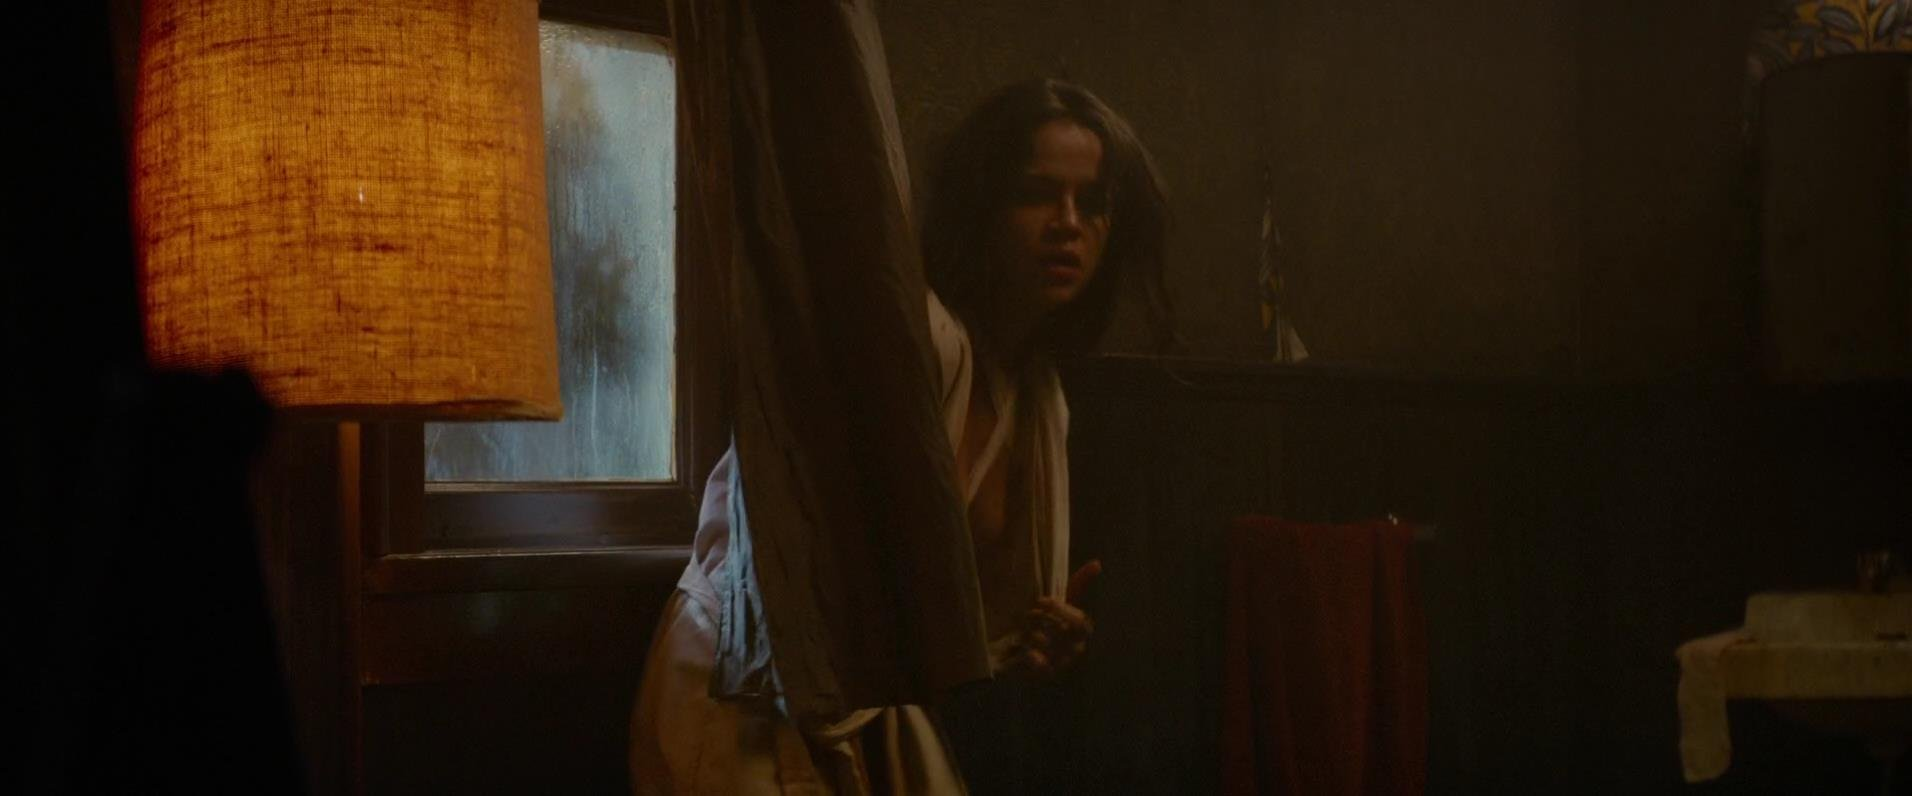 Seems me, Michelle rodriguez fucking nude agree, the